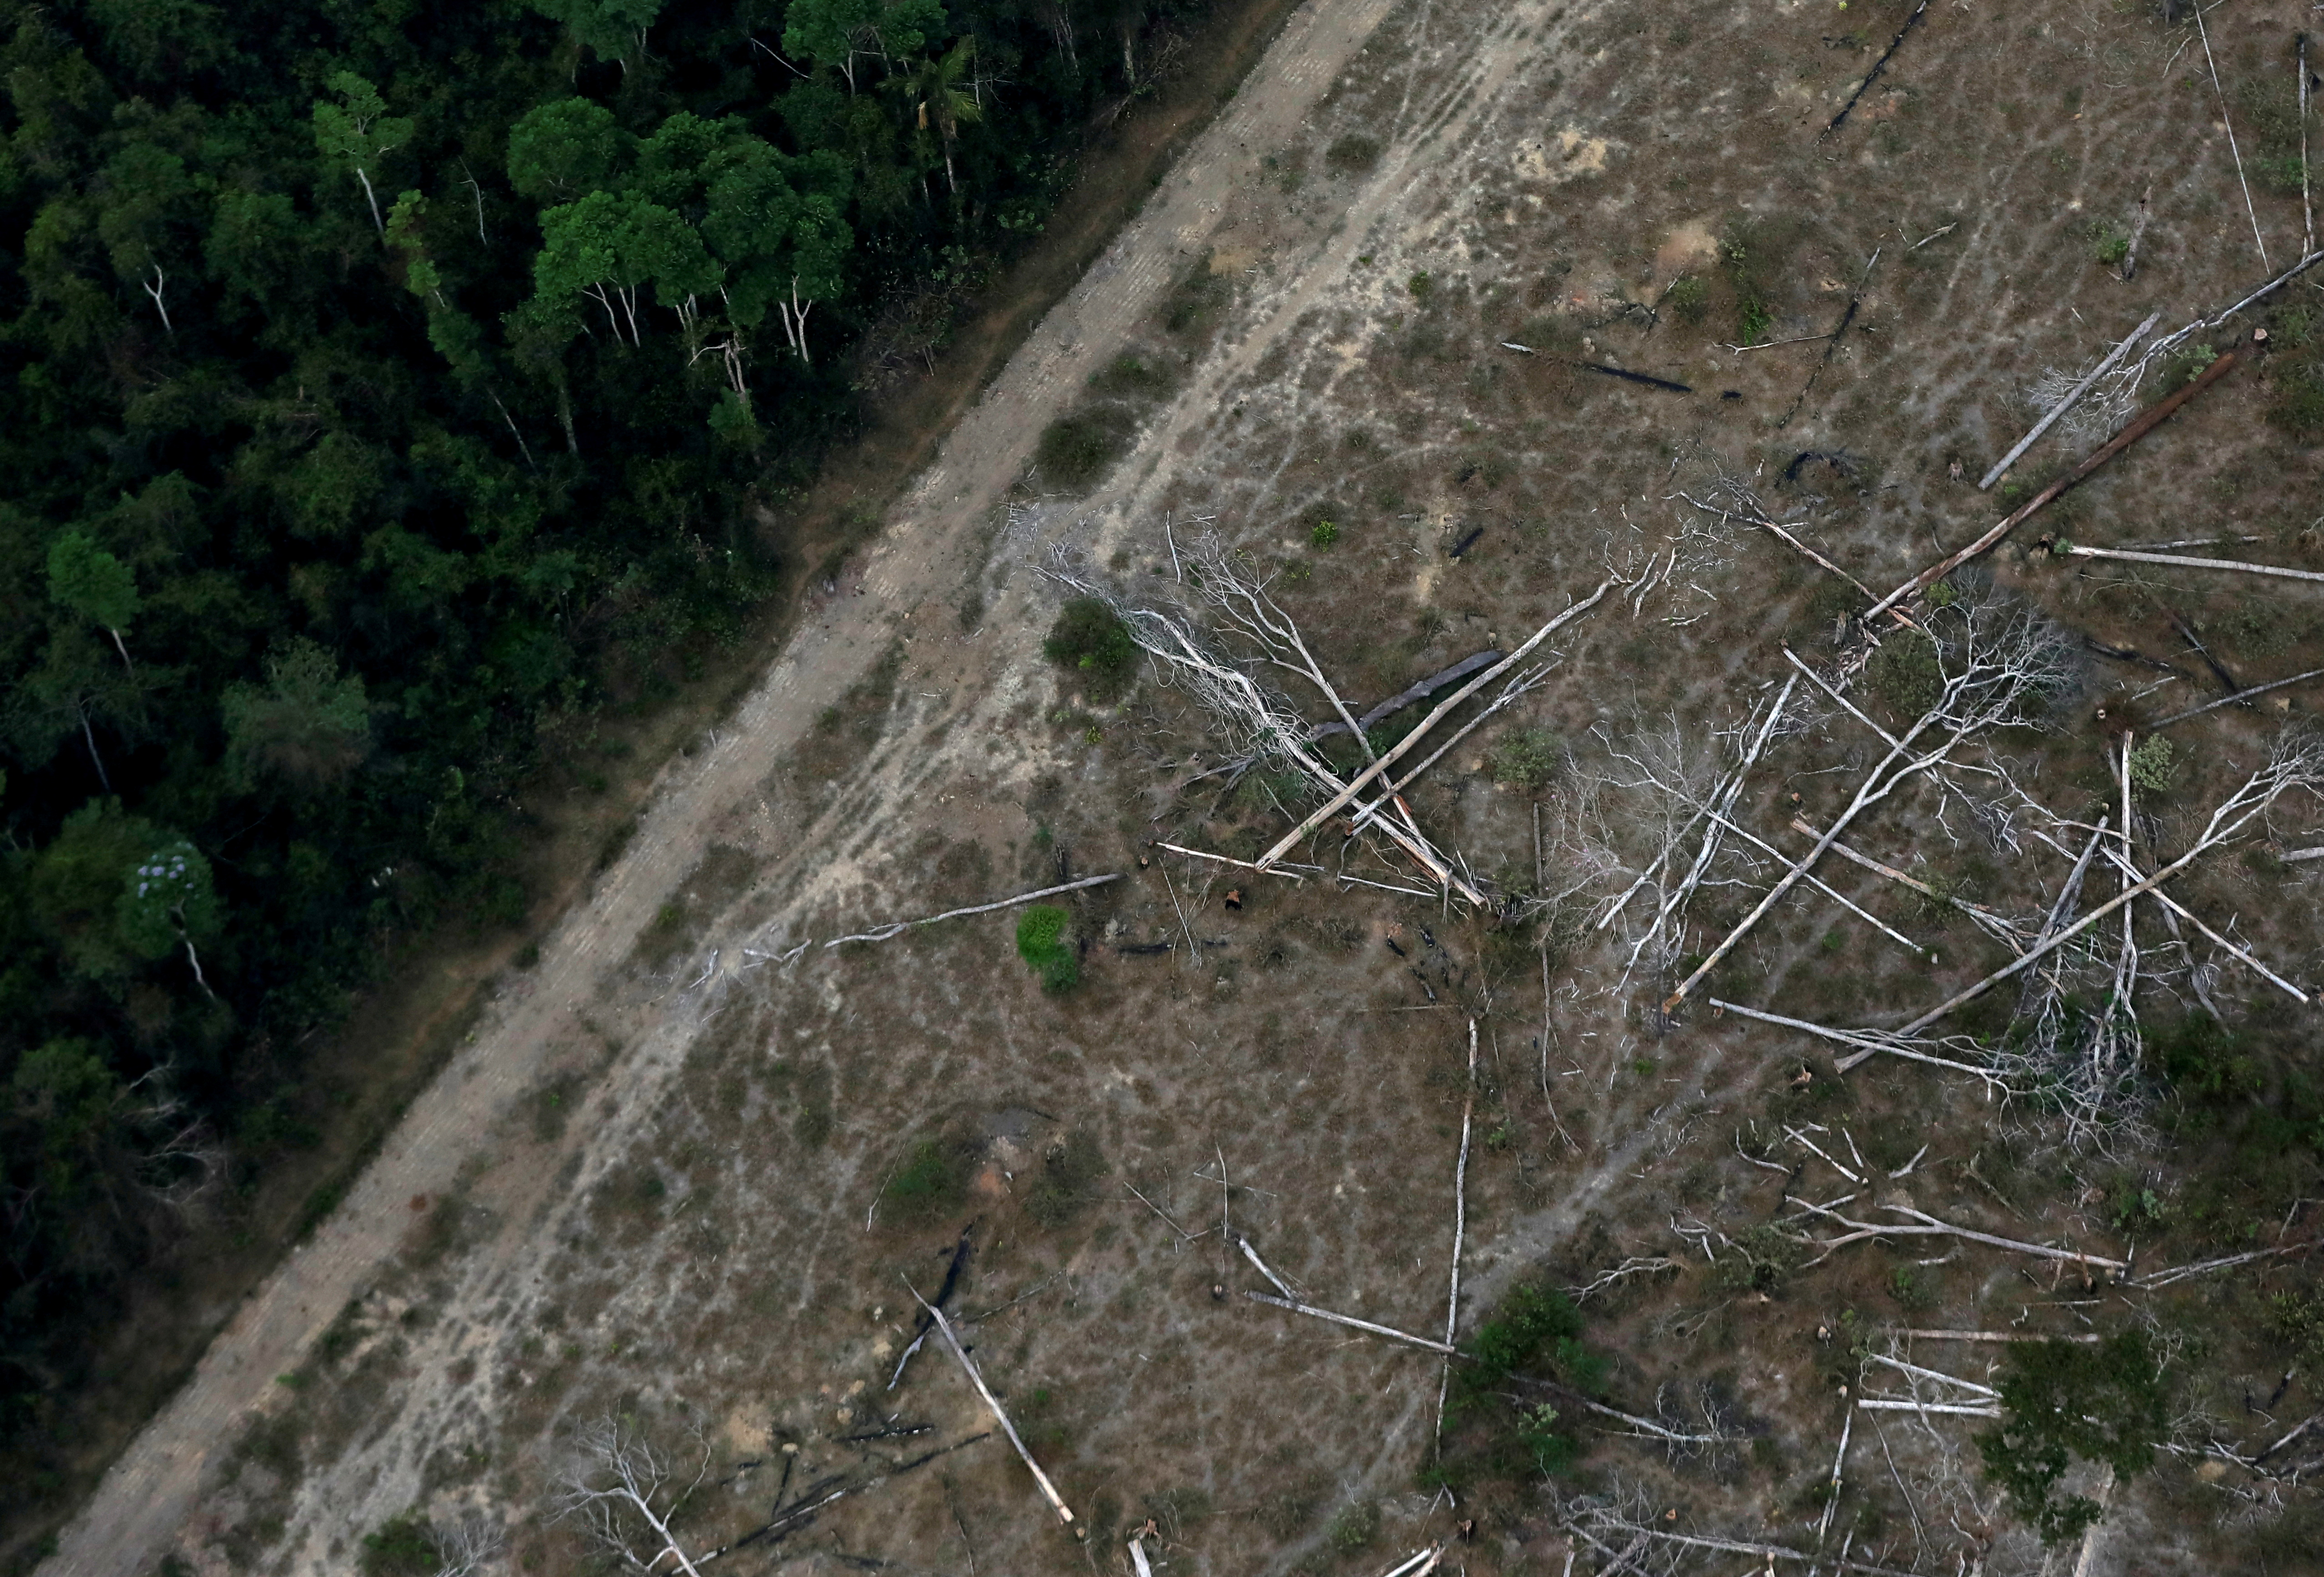 An aerial view shows a deforested plot of the Amazon near Porto Velho, Rondonia State, Brazil, September 17, 2019. REUTERS/Bruno Kelly